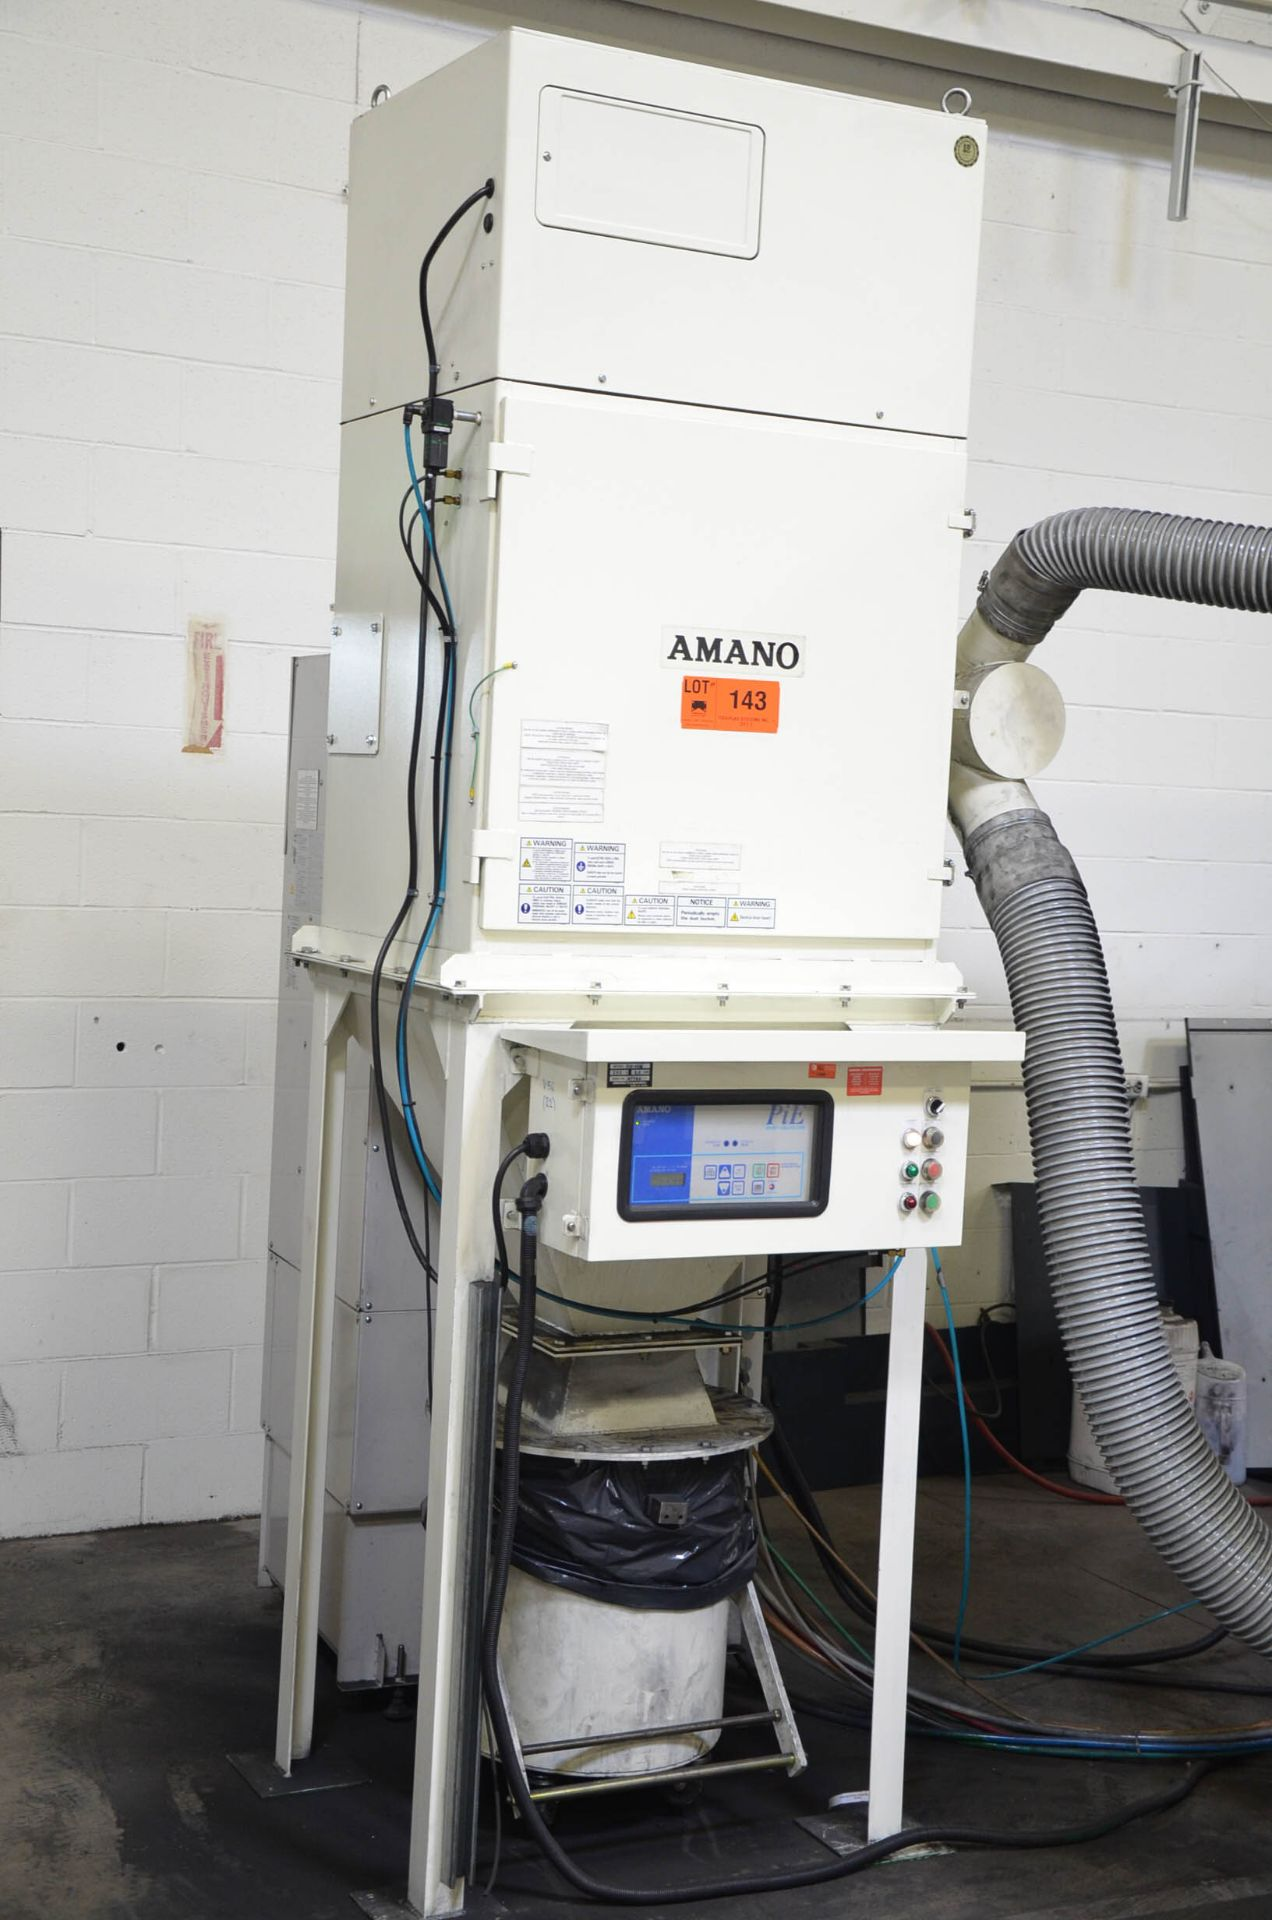 AMANO PIE-45M 3HP CYCLONIC-TYPE DUST COLLECTOR, 200V/3PH/60HZ, 47744 (CI) [RIGGING FEES FOR LOT #143